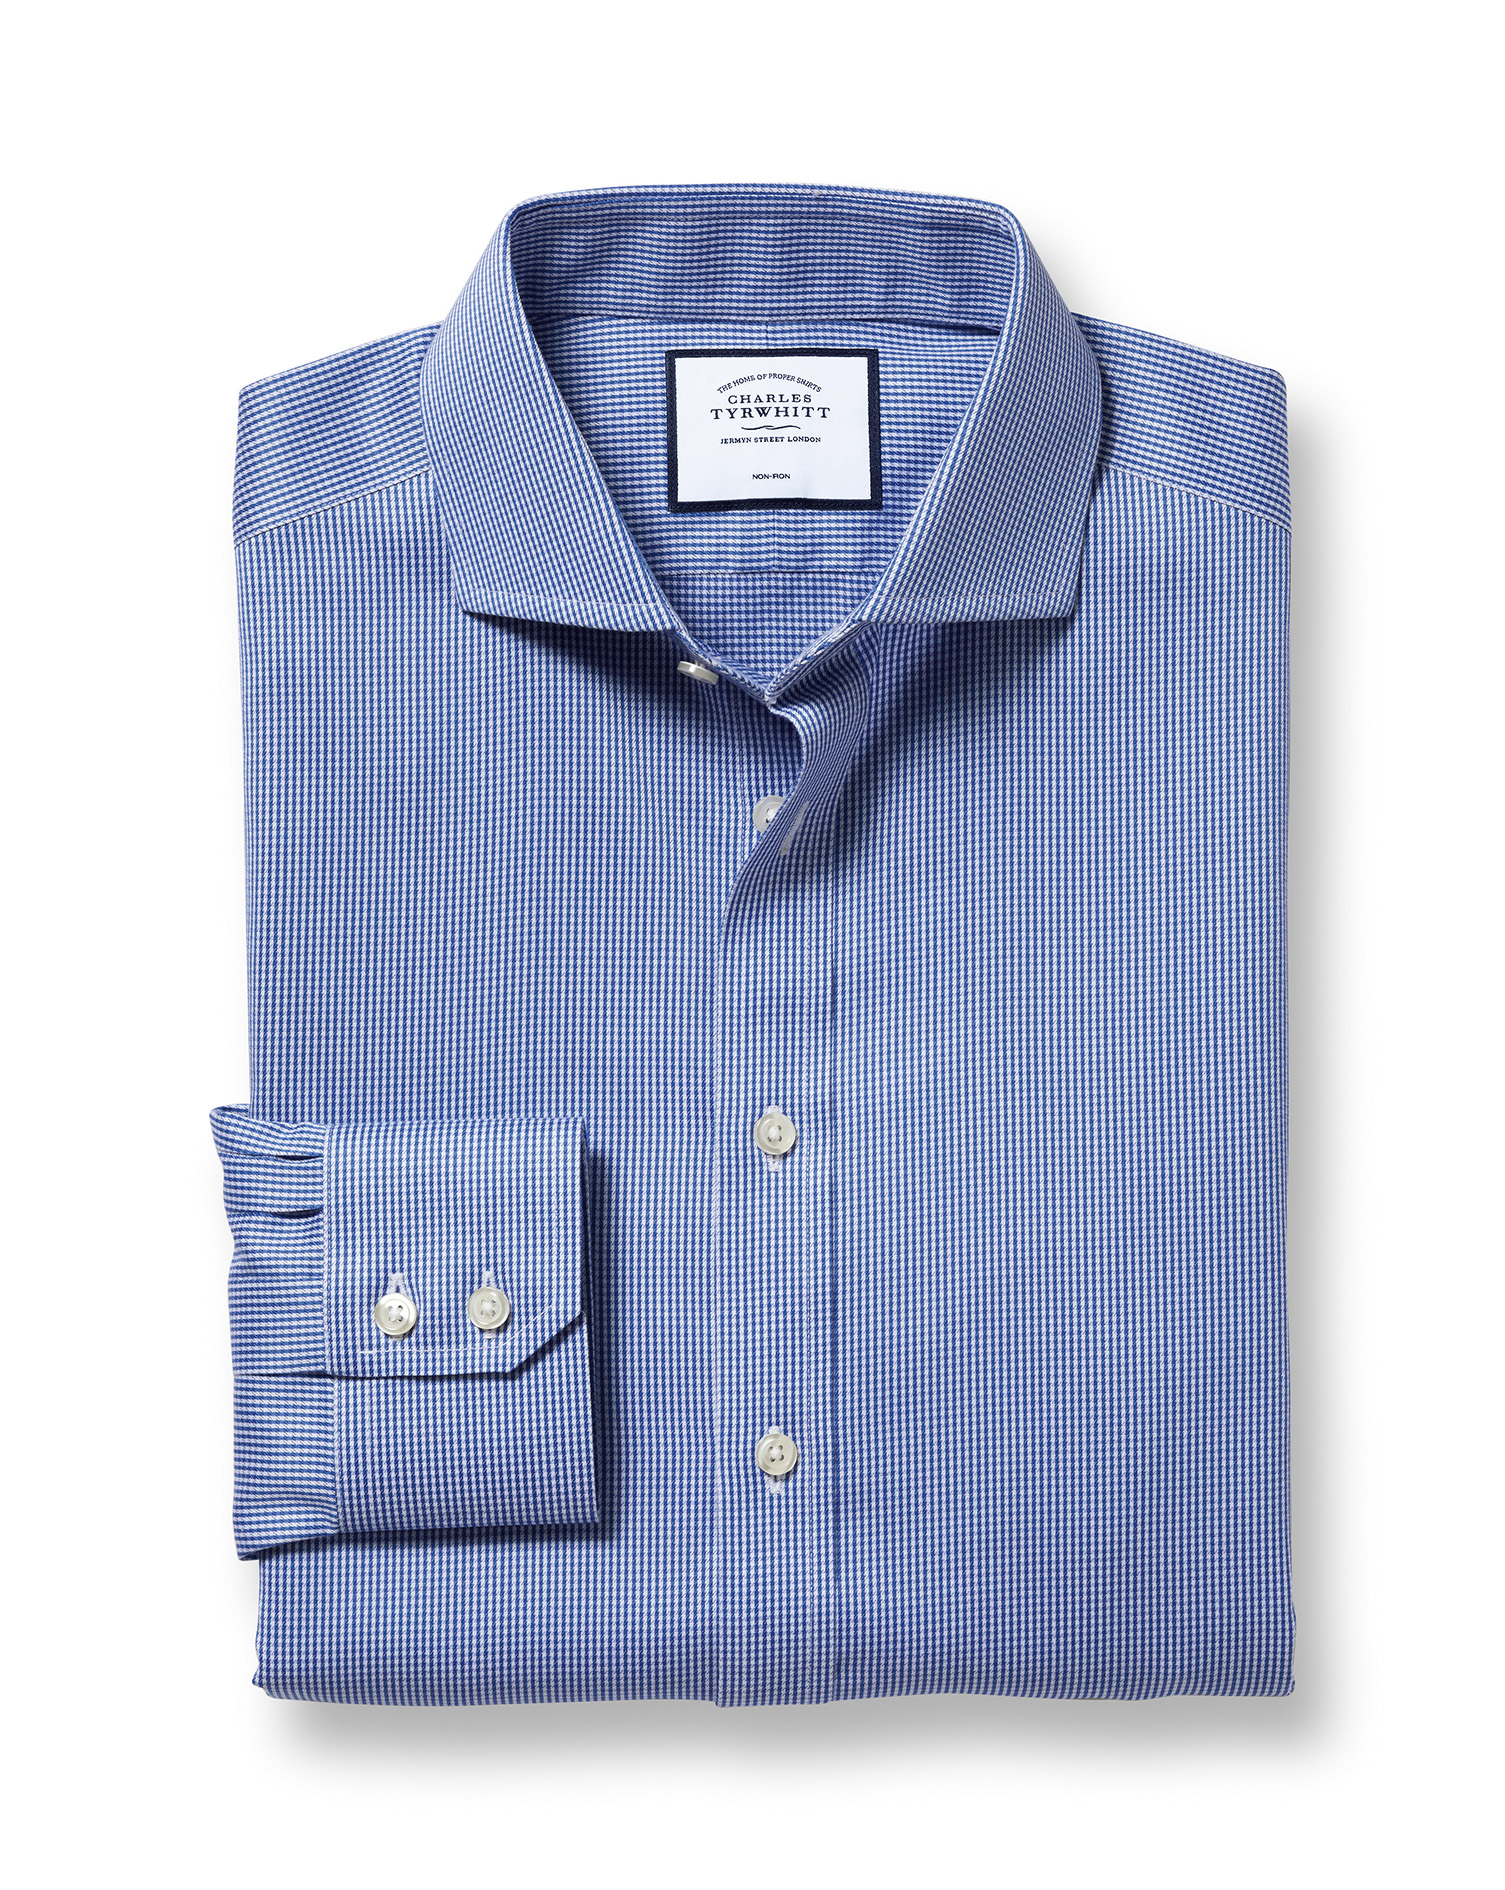 Slim Fit Cutaway Non-Iron Puppytooth Royal Blue Cotton Formal Shirt Double Cuff Size 16.5/36 by Char